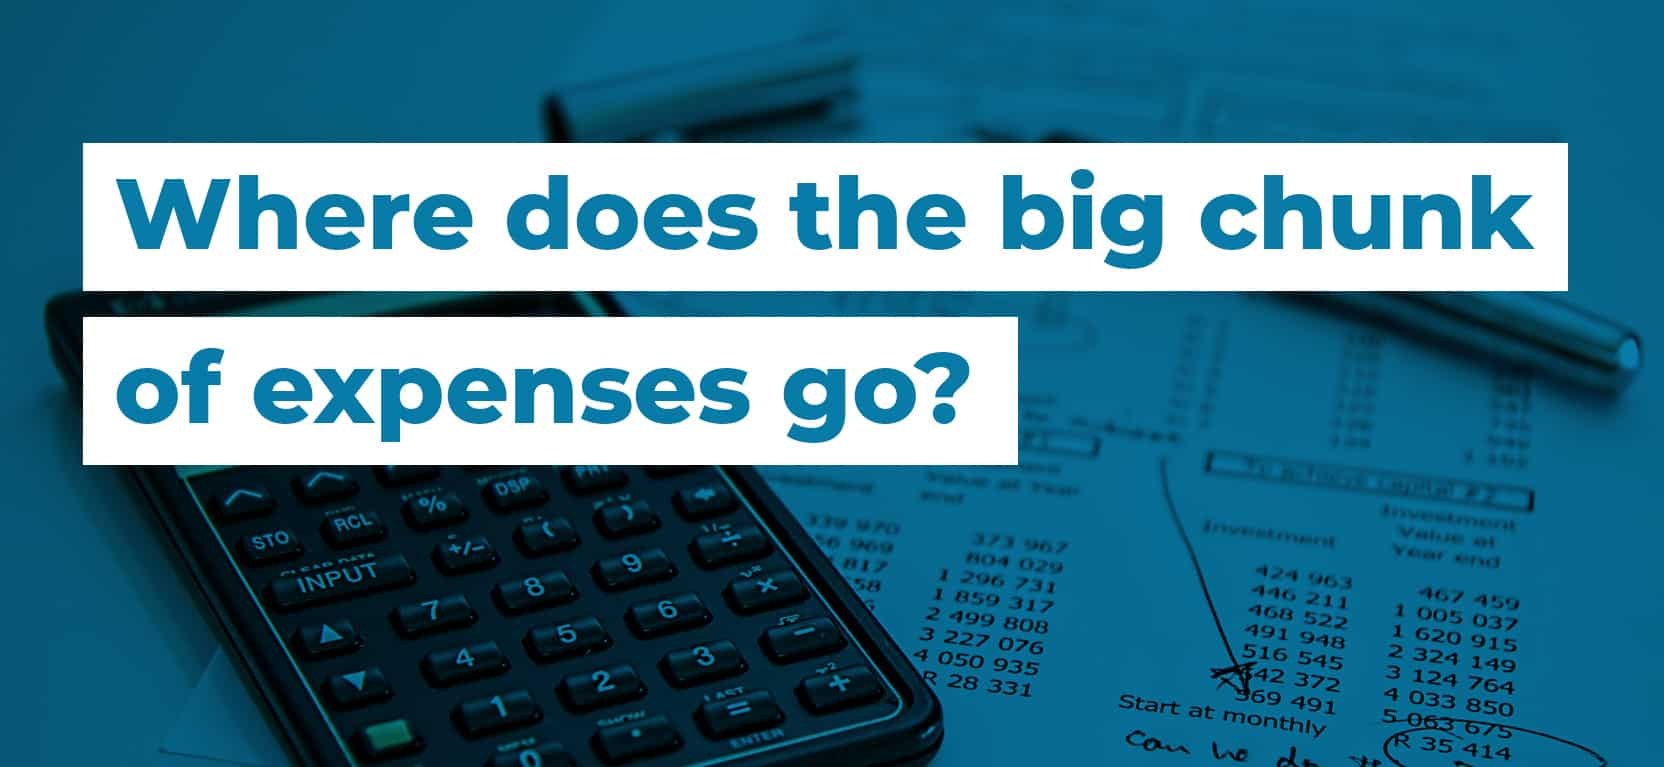 24 Where does the big chunk of expenses go3